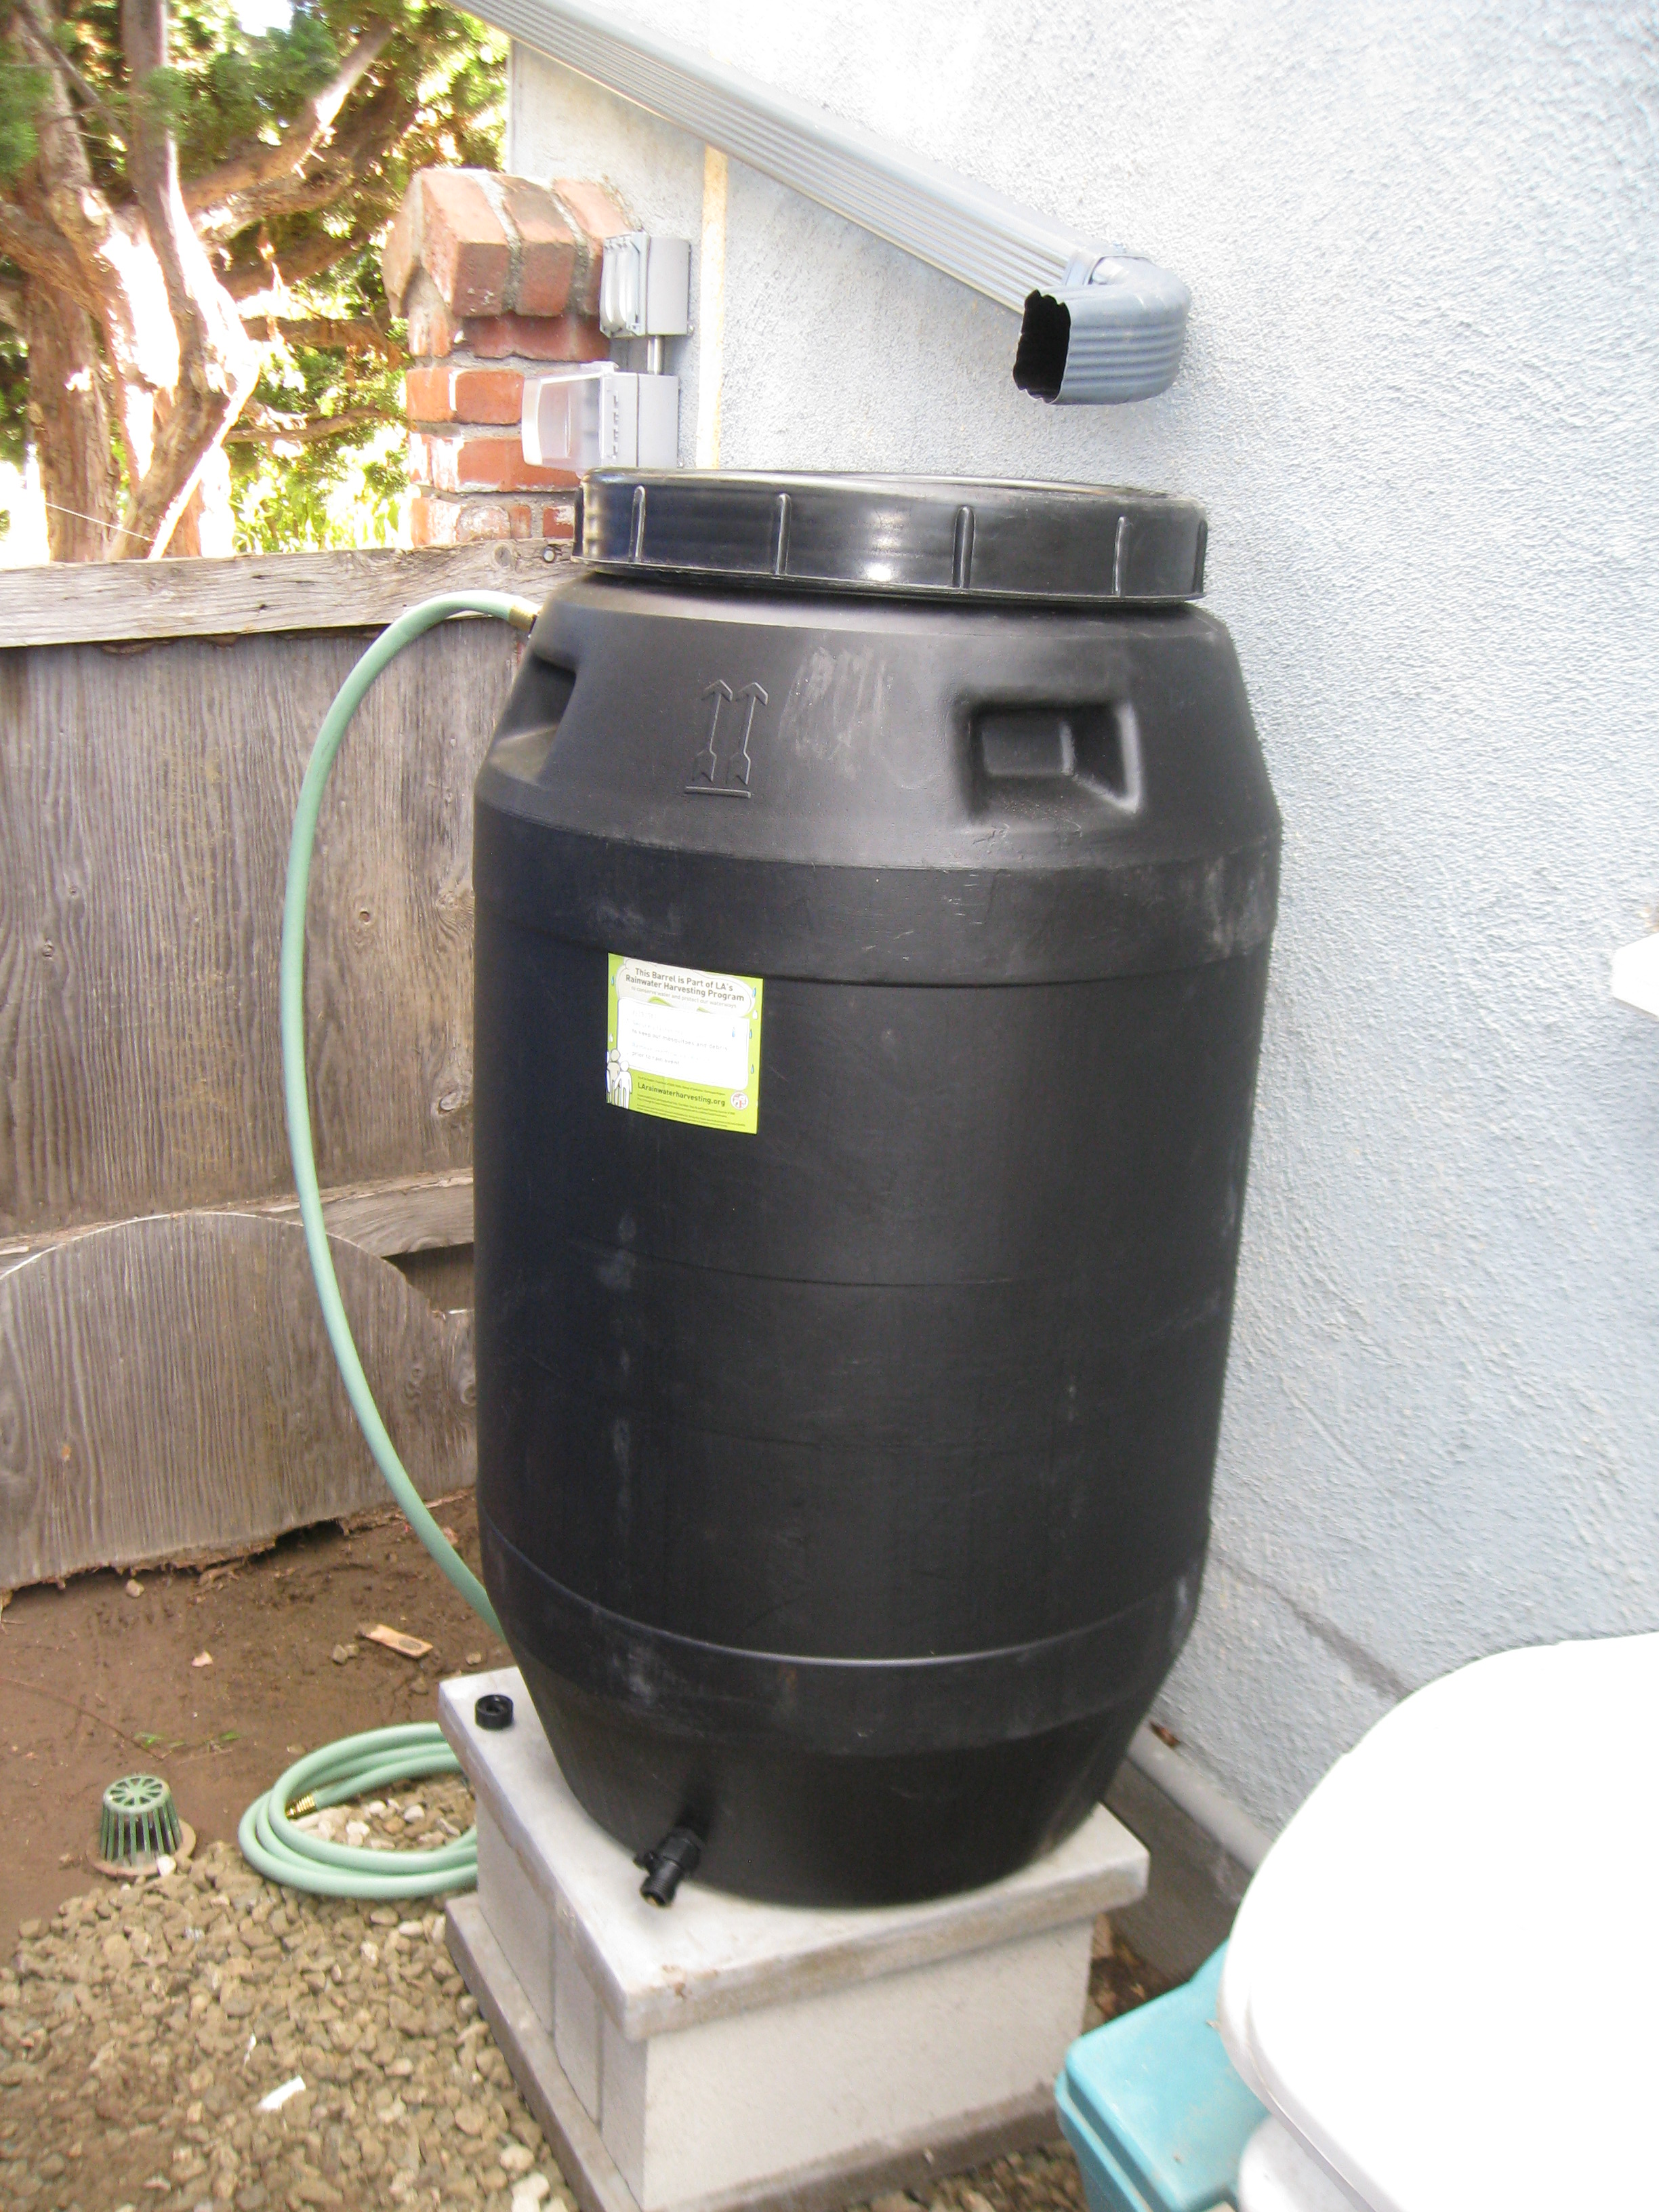 Food grade barrels are best for use in vegetable gardens.